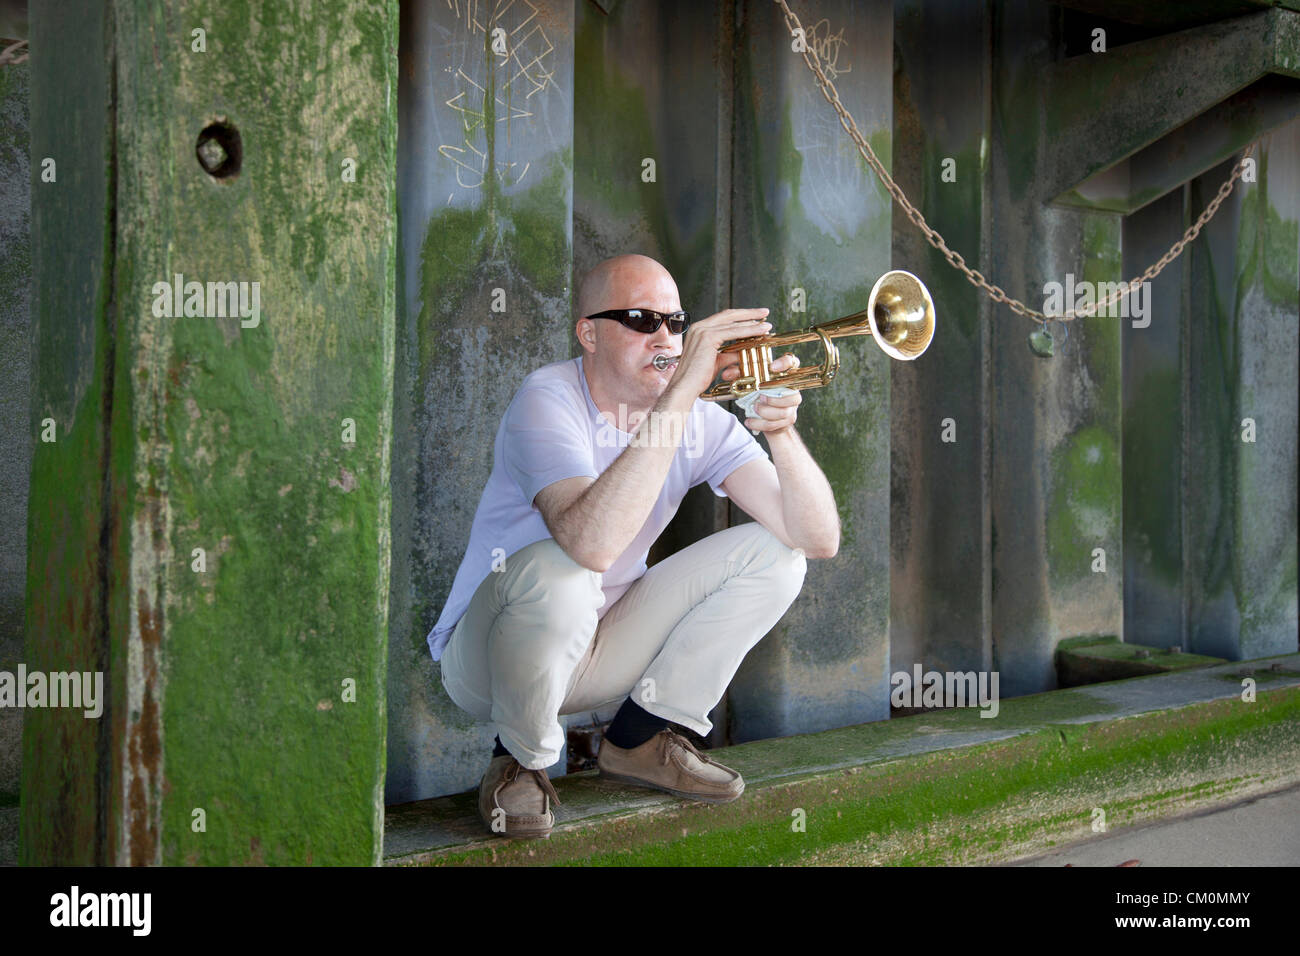 London, UK. 8th September, 2012. Man plays a trumpet underneath Blackfriars Bridge on the shore of the river Thames. - Stock Image